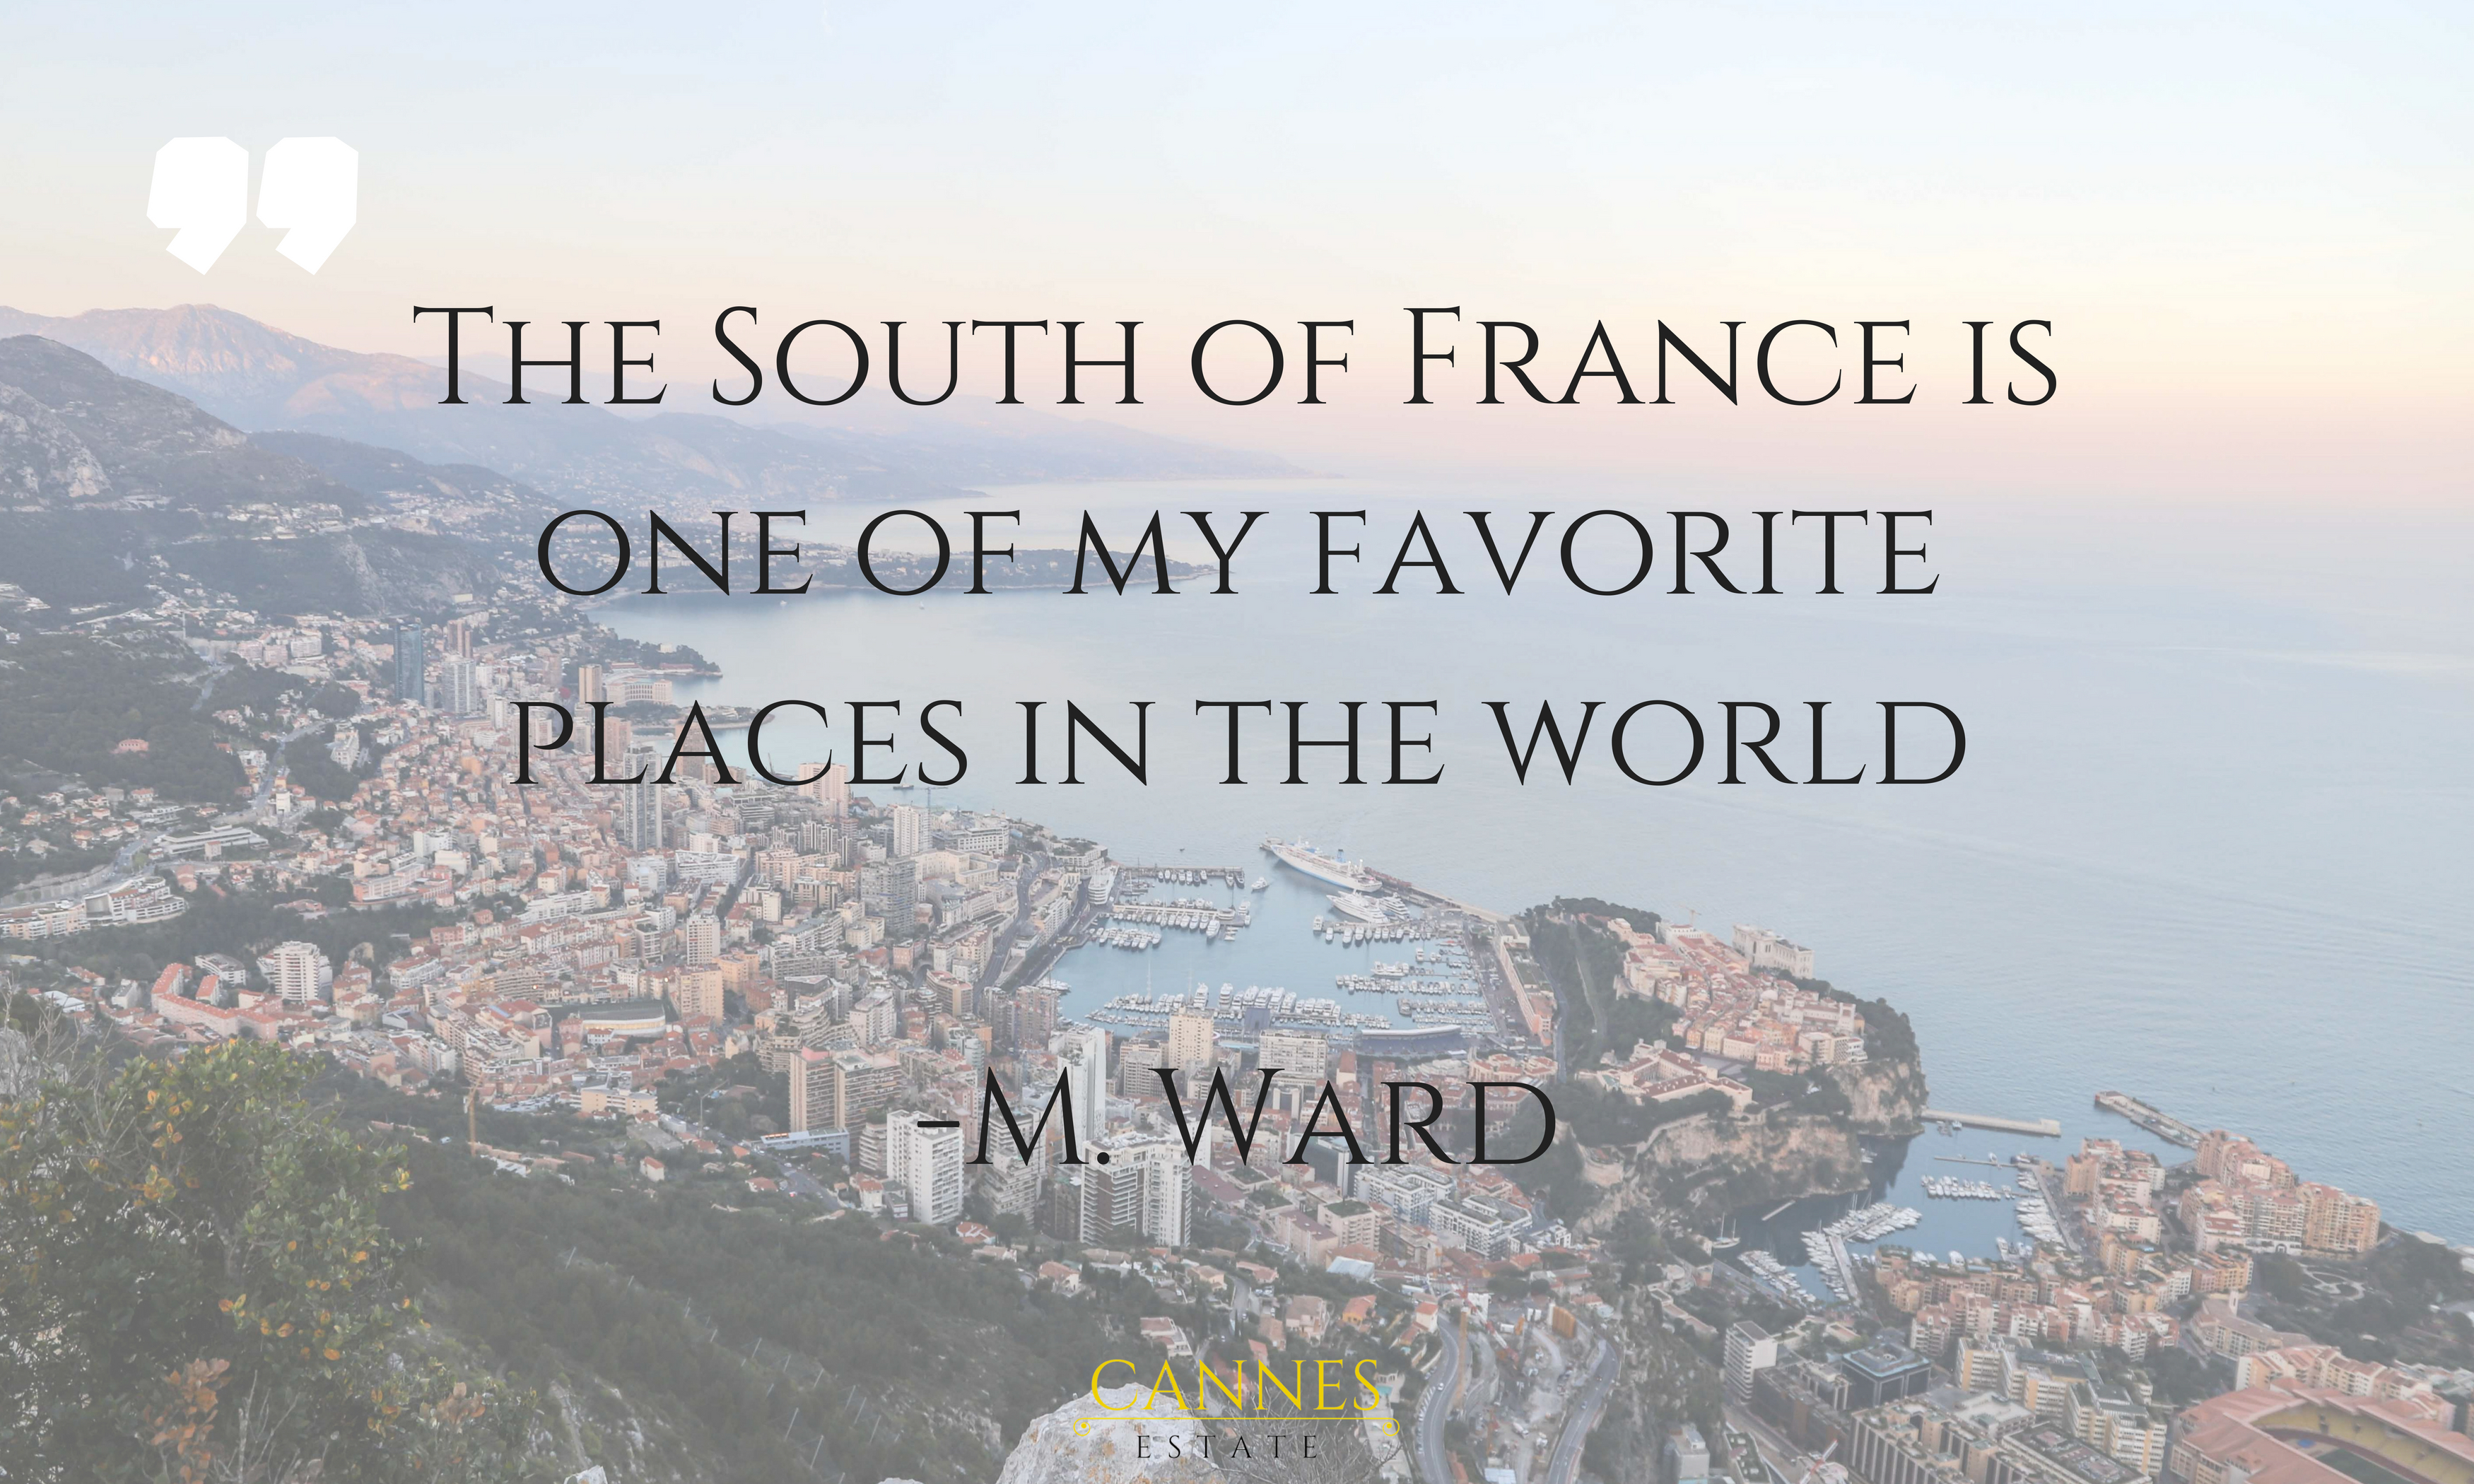 South of France quote